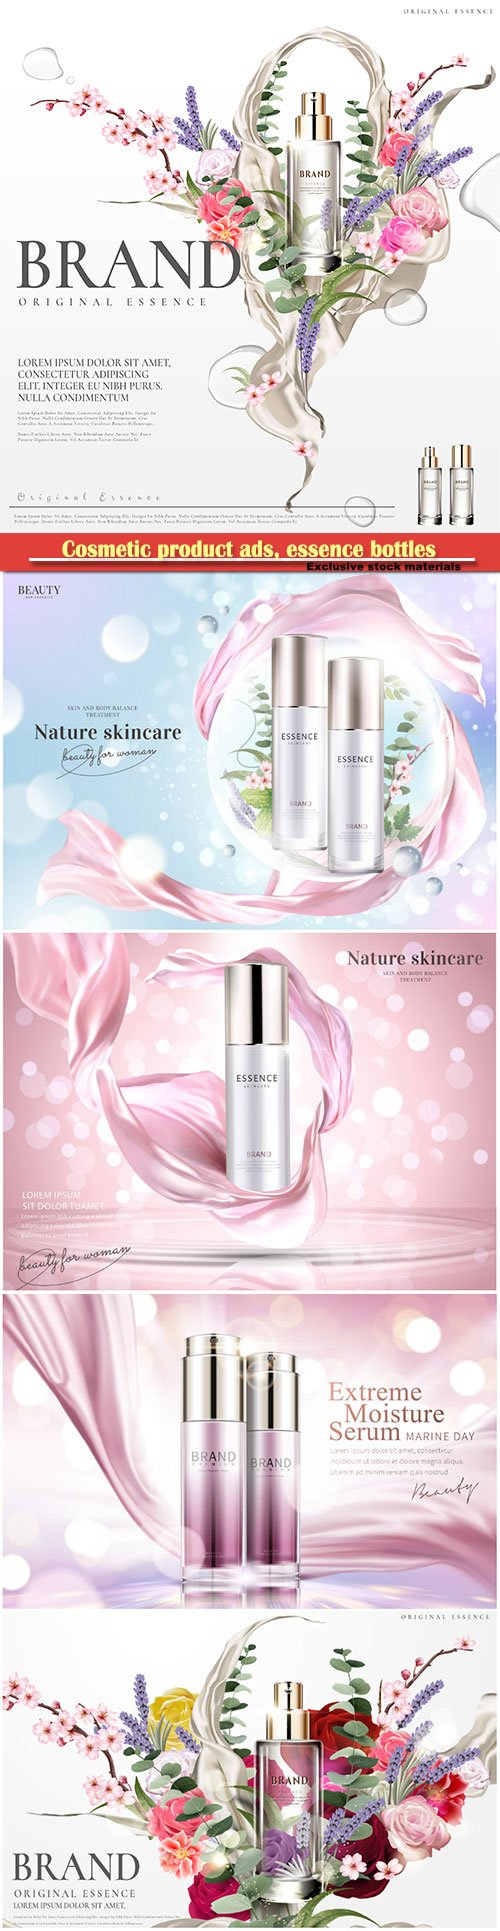 Cosmetic product ads, essence bottles with floral and plants in bubbles in 3d illustration, glitter bokeh background